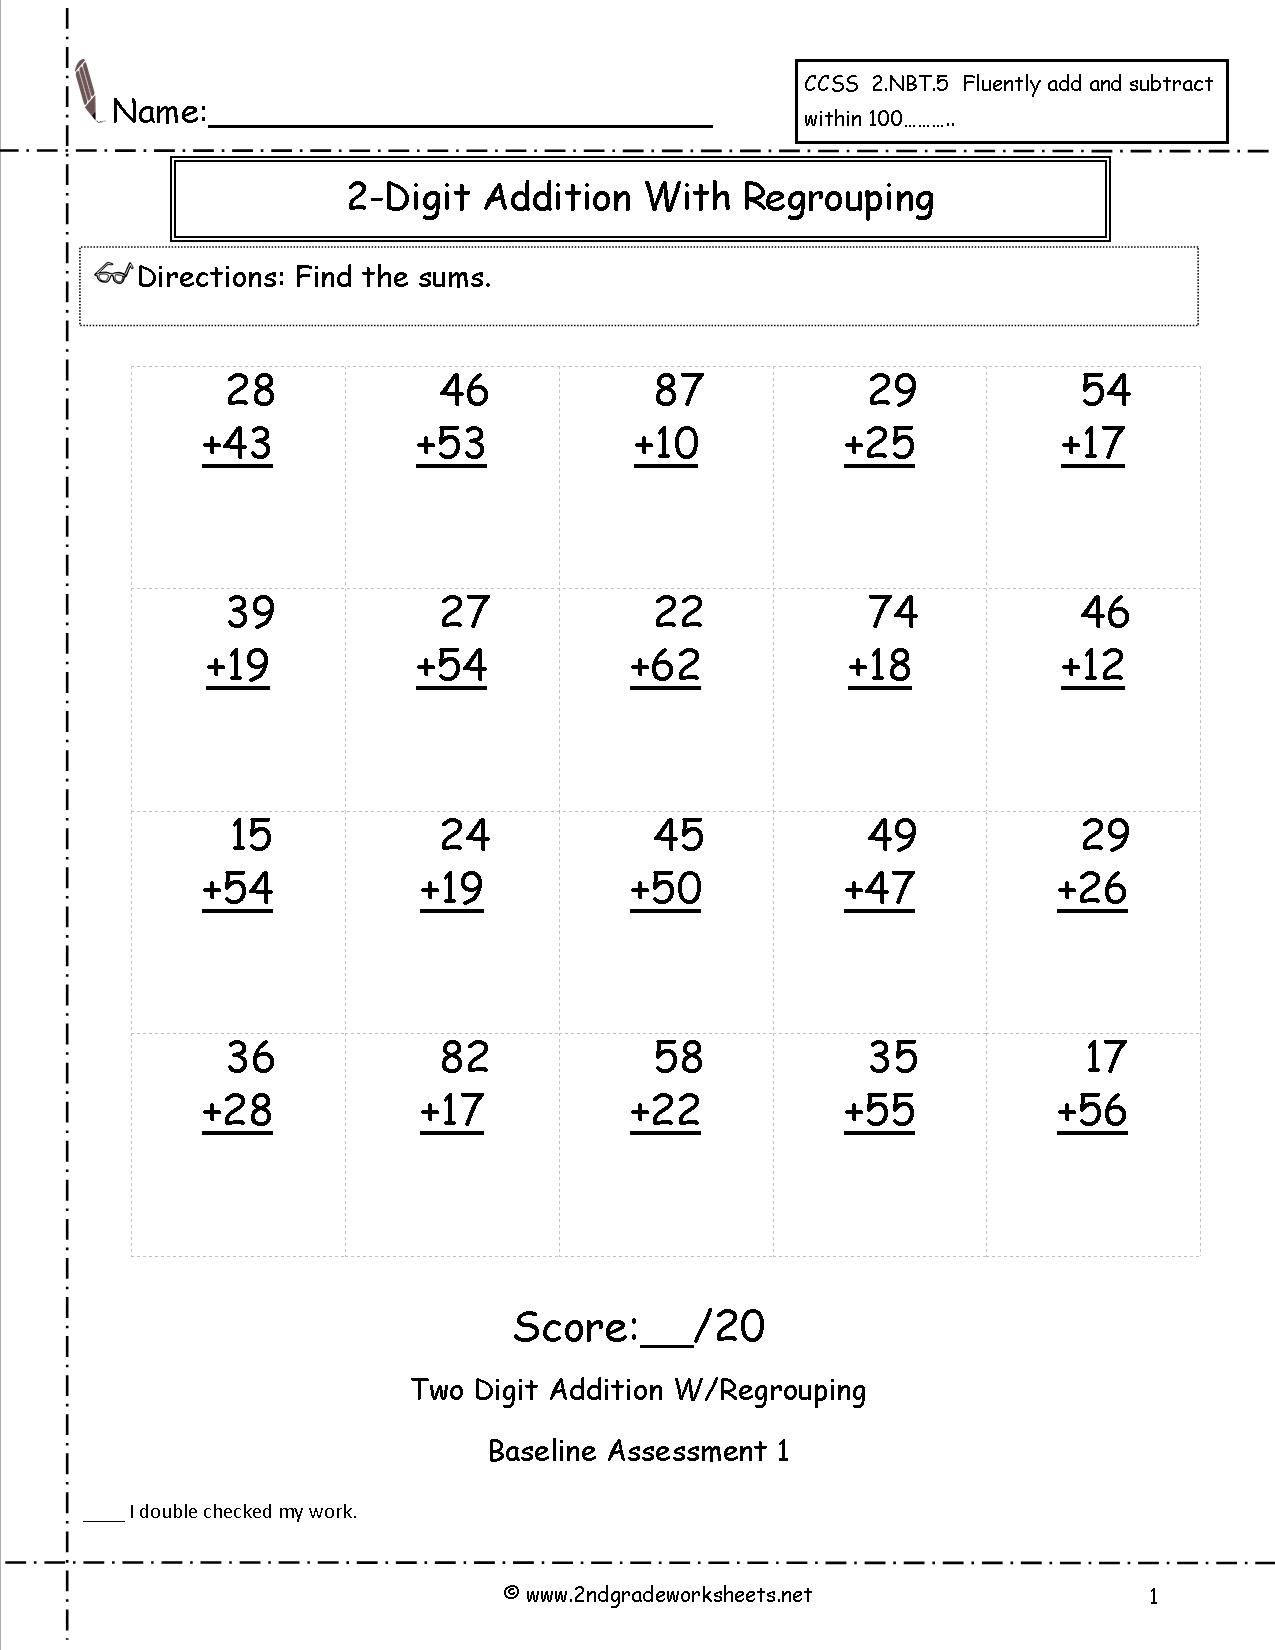 two digit addition with regrouping assessment  love to learn  two digit addition with regrouping assessment